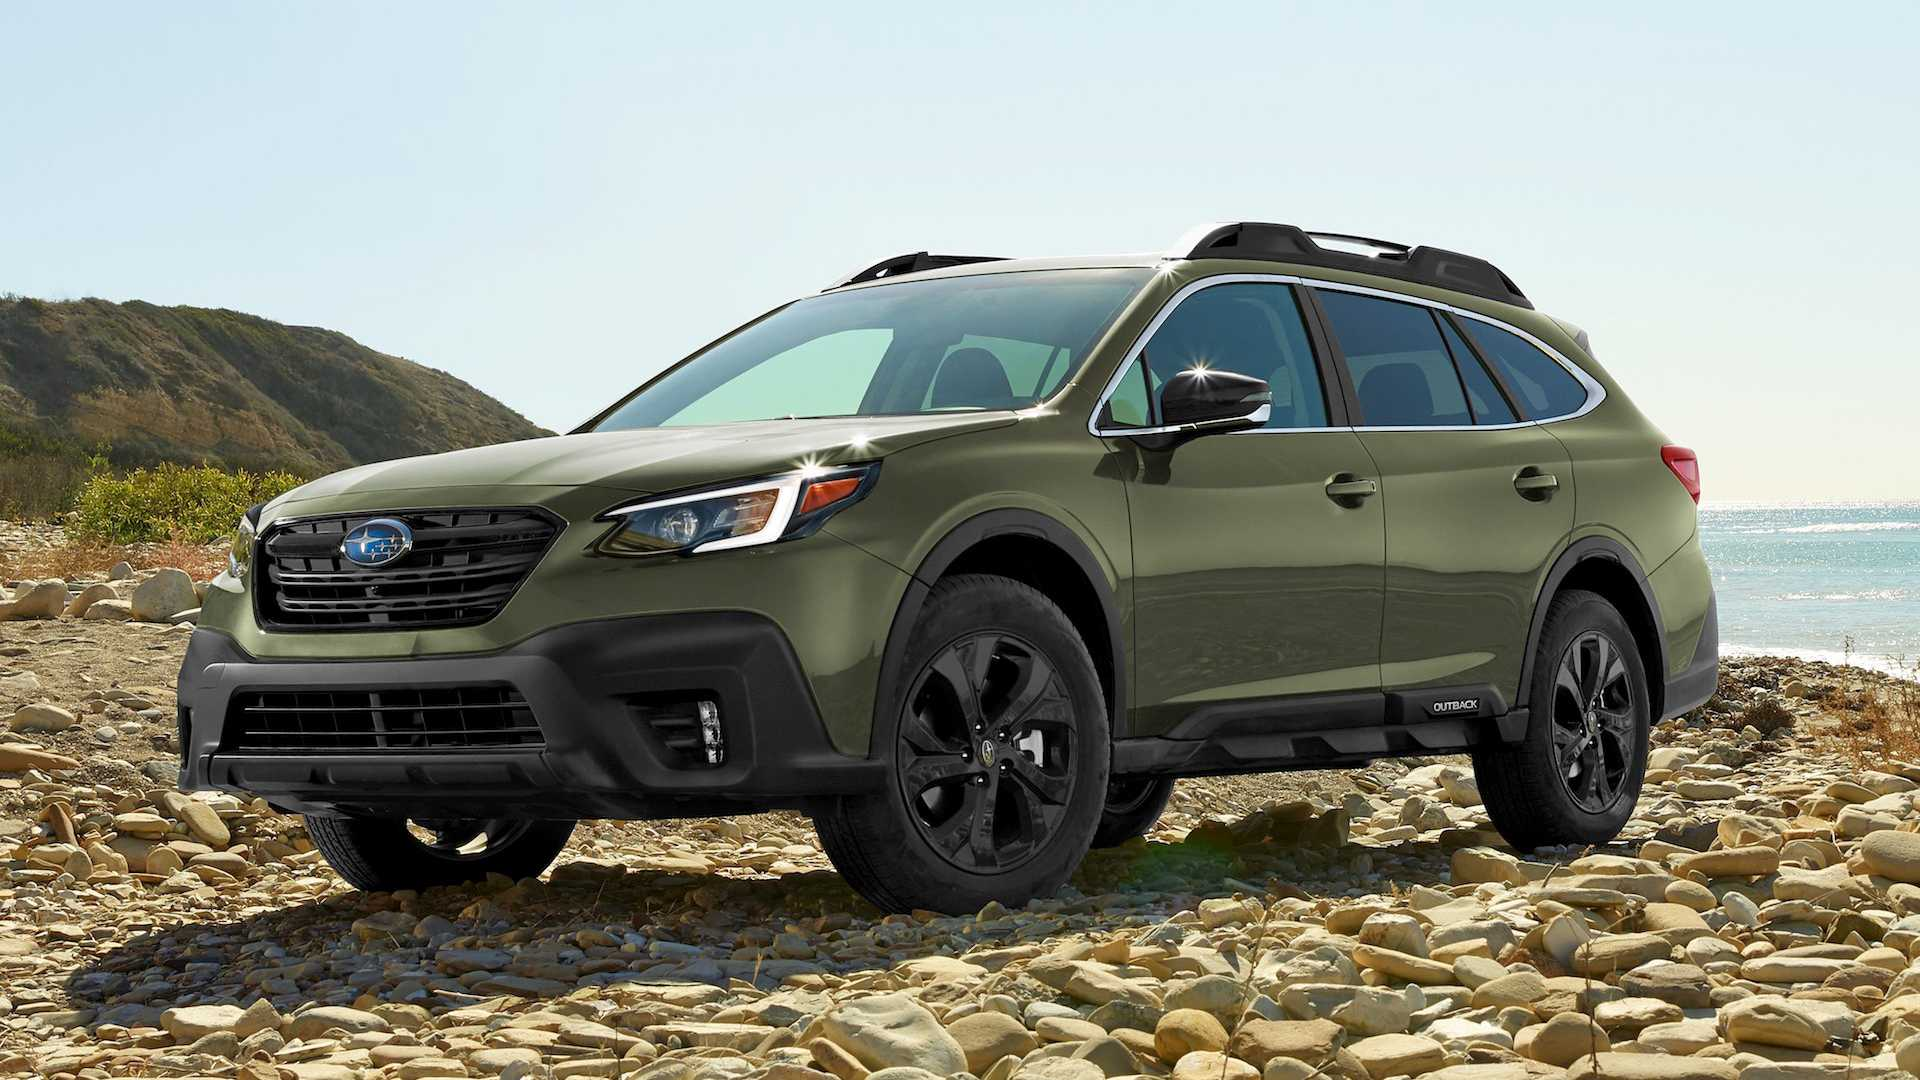 39 All New 2020 Subaru Outback Price Engine